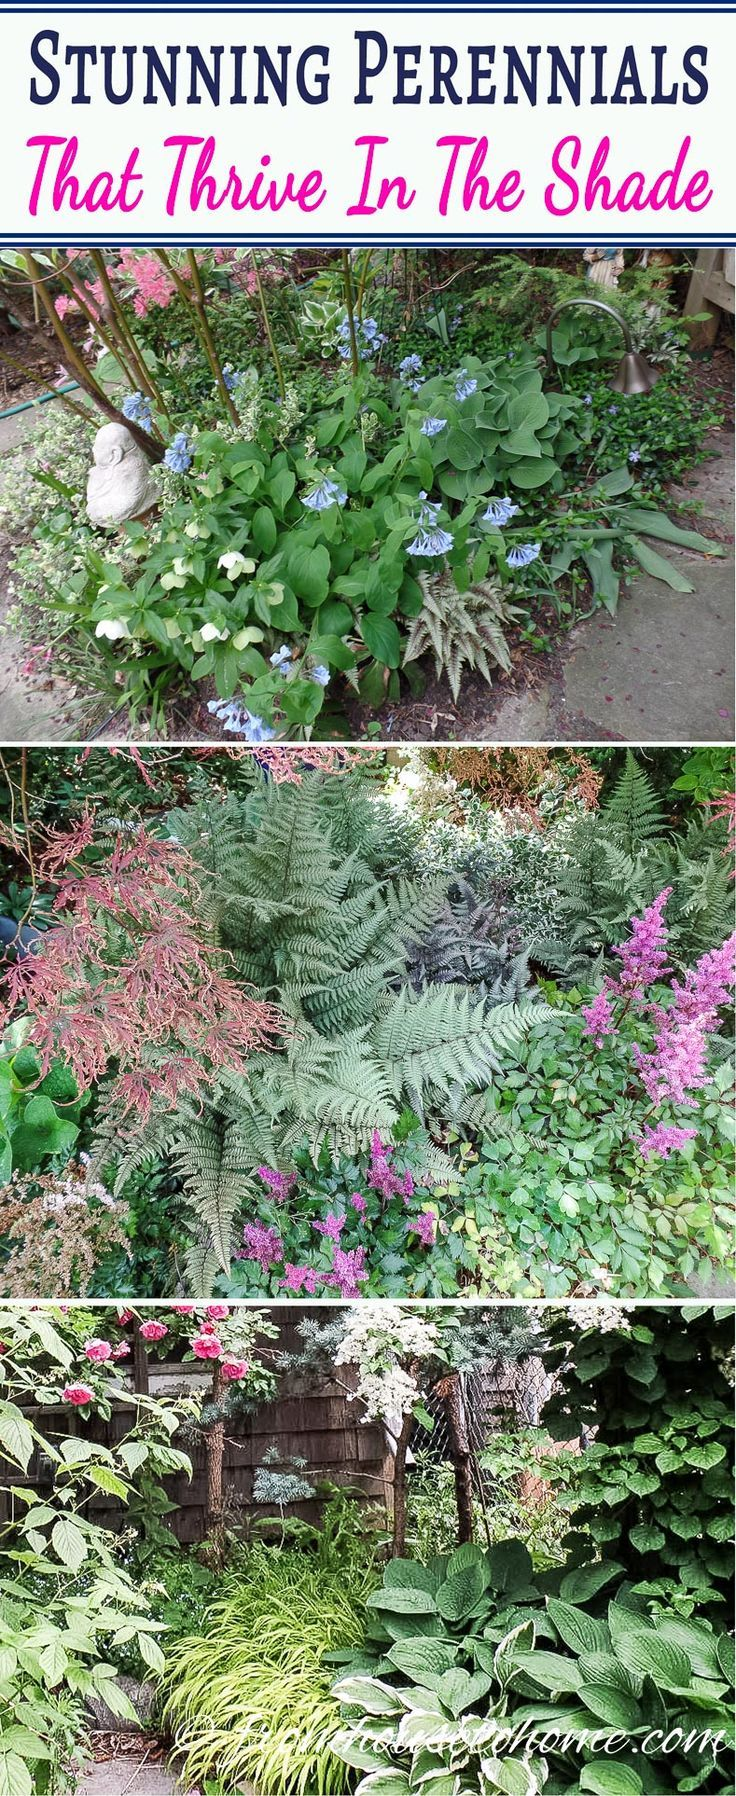 I Love These Beautiful Flowering Perennial Ground Cover Plants Will Be Planting Them Under The Bushes In My Front Yard To Help Keep Weeds Down